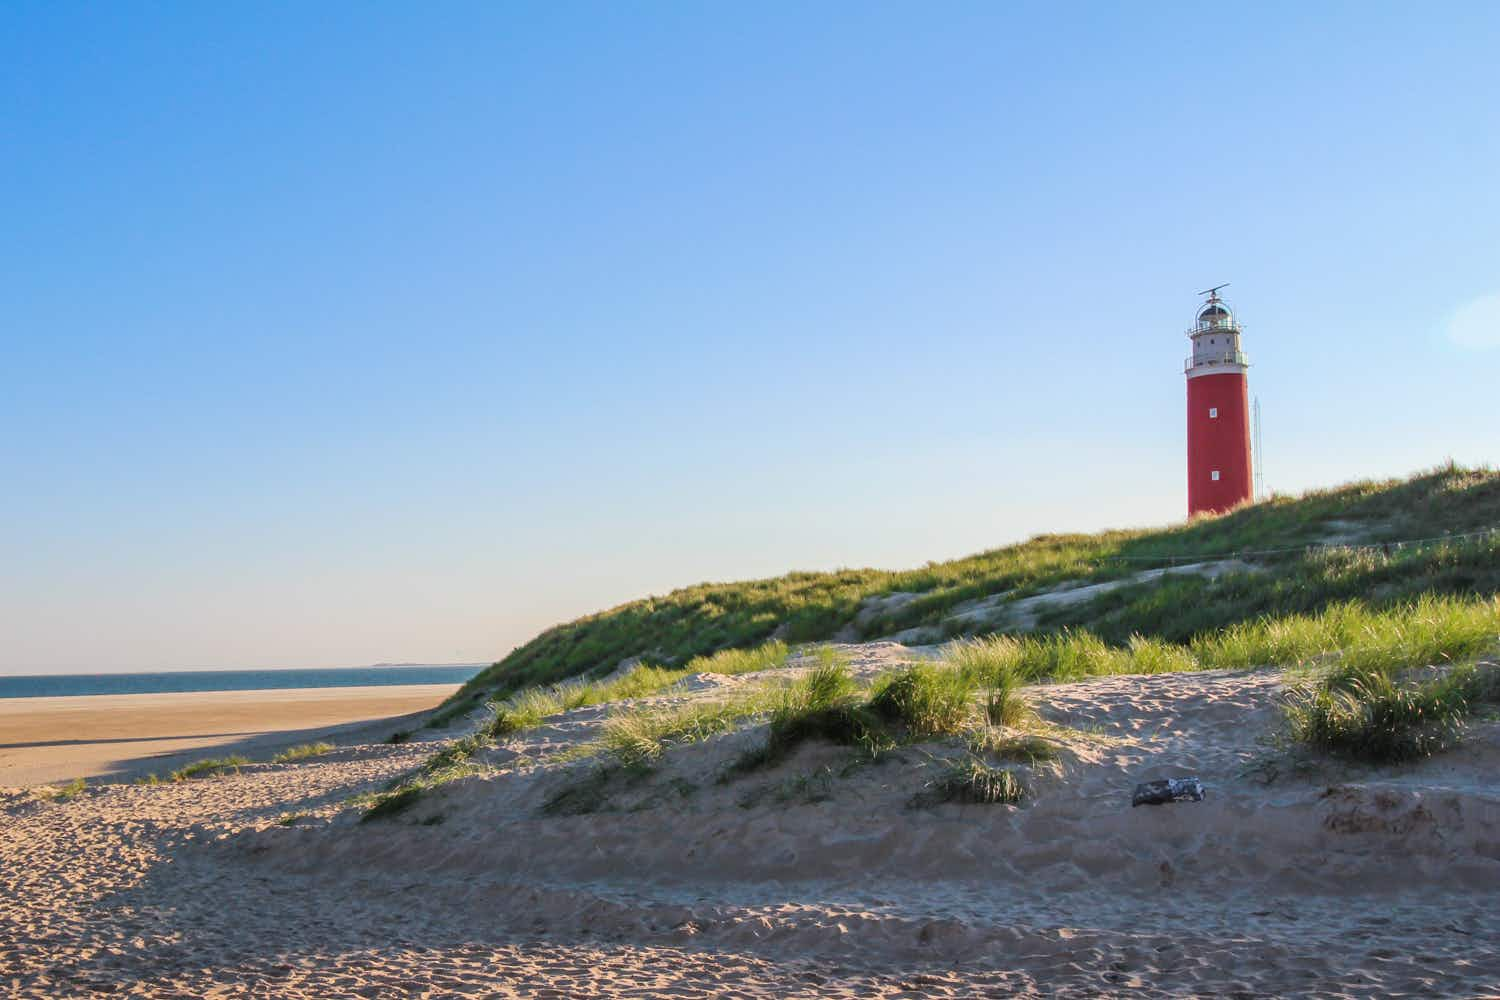 Island escape: unwind in ends-of-the-earth Texel